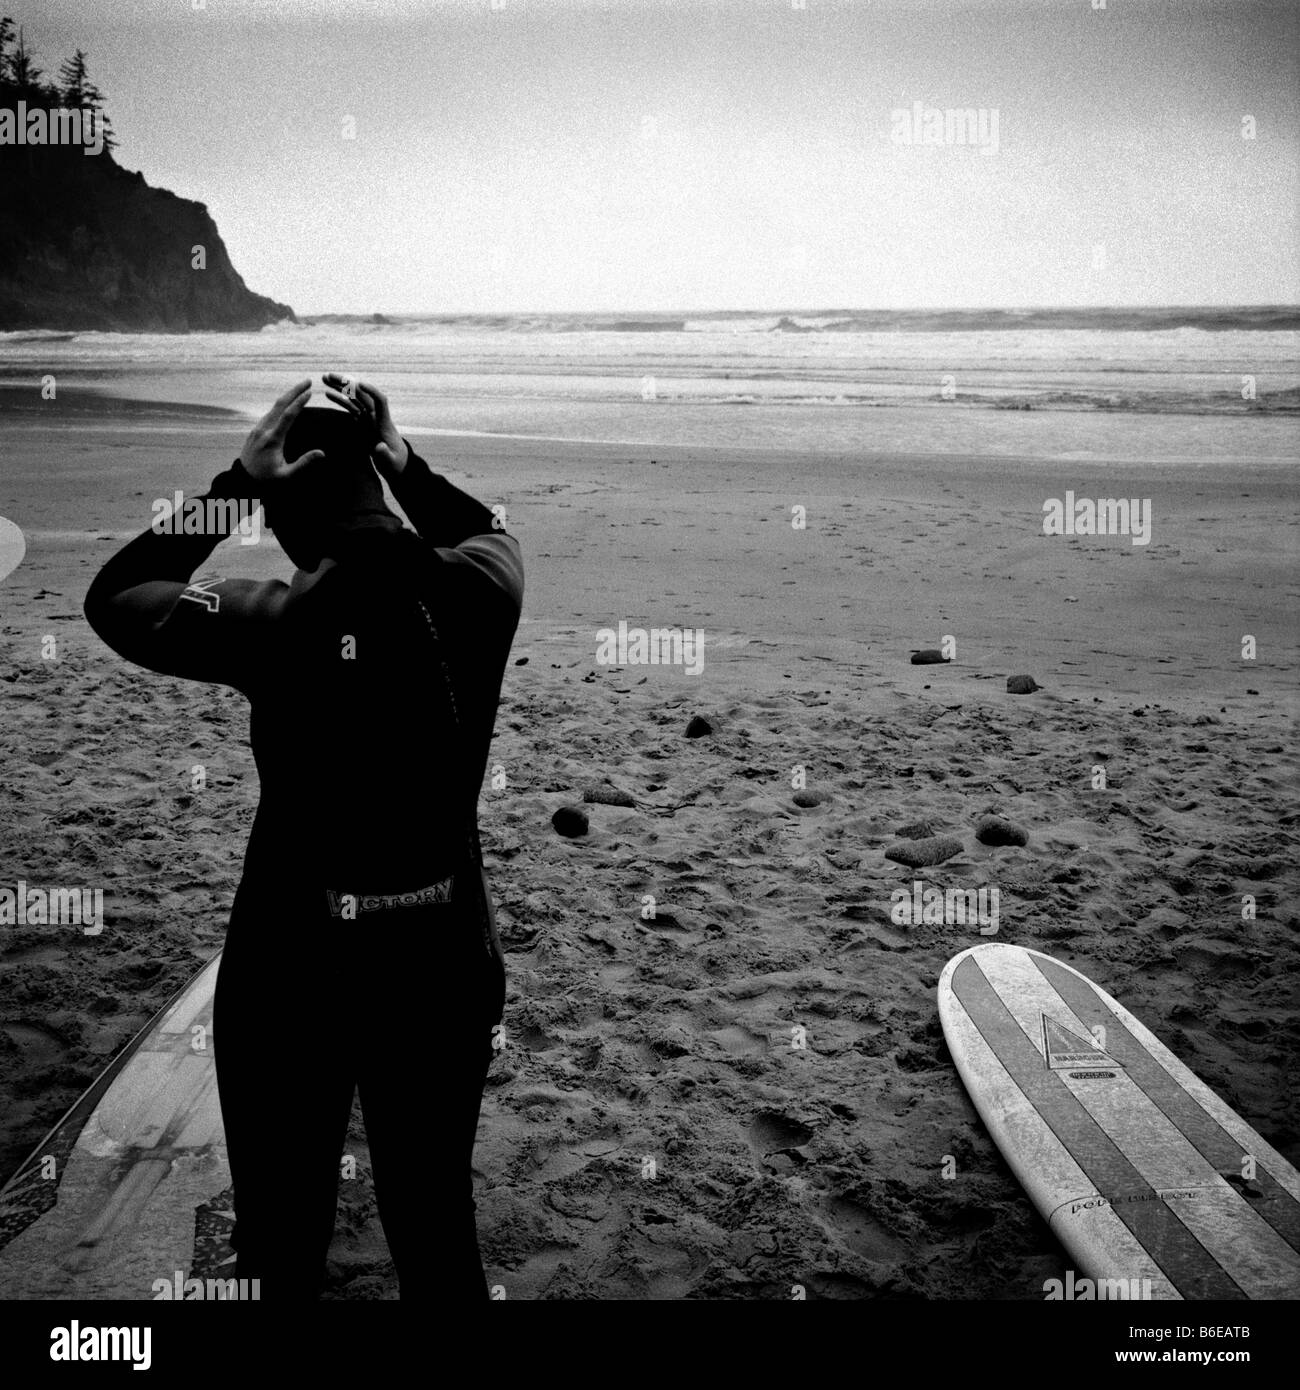 A surfer adjusts his wetsuit before going out at Short Sands Beach, in Oregon. - Stock Image